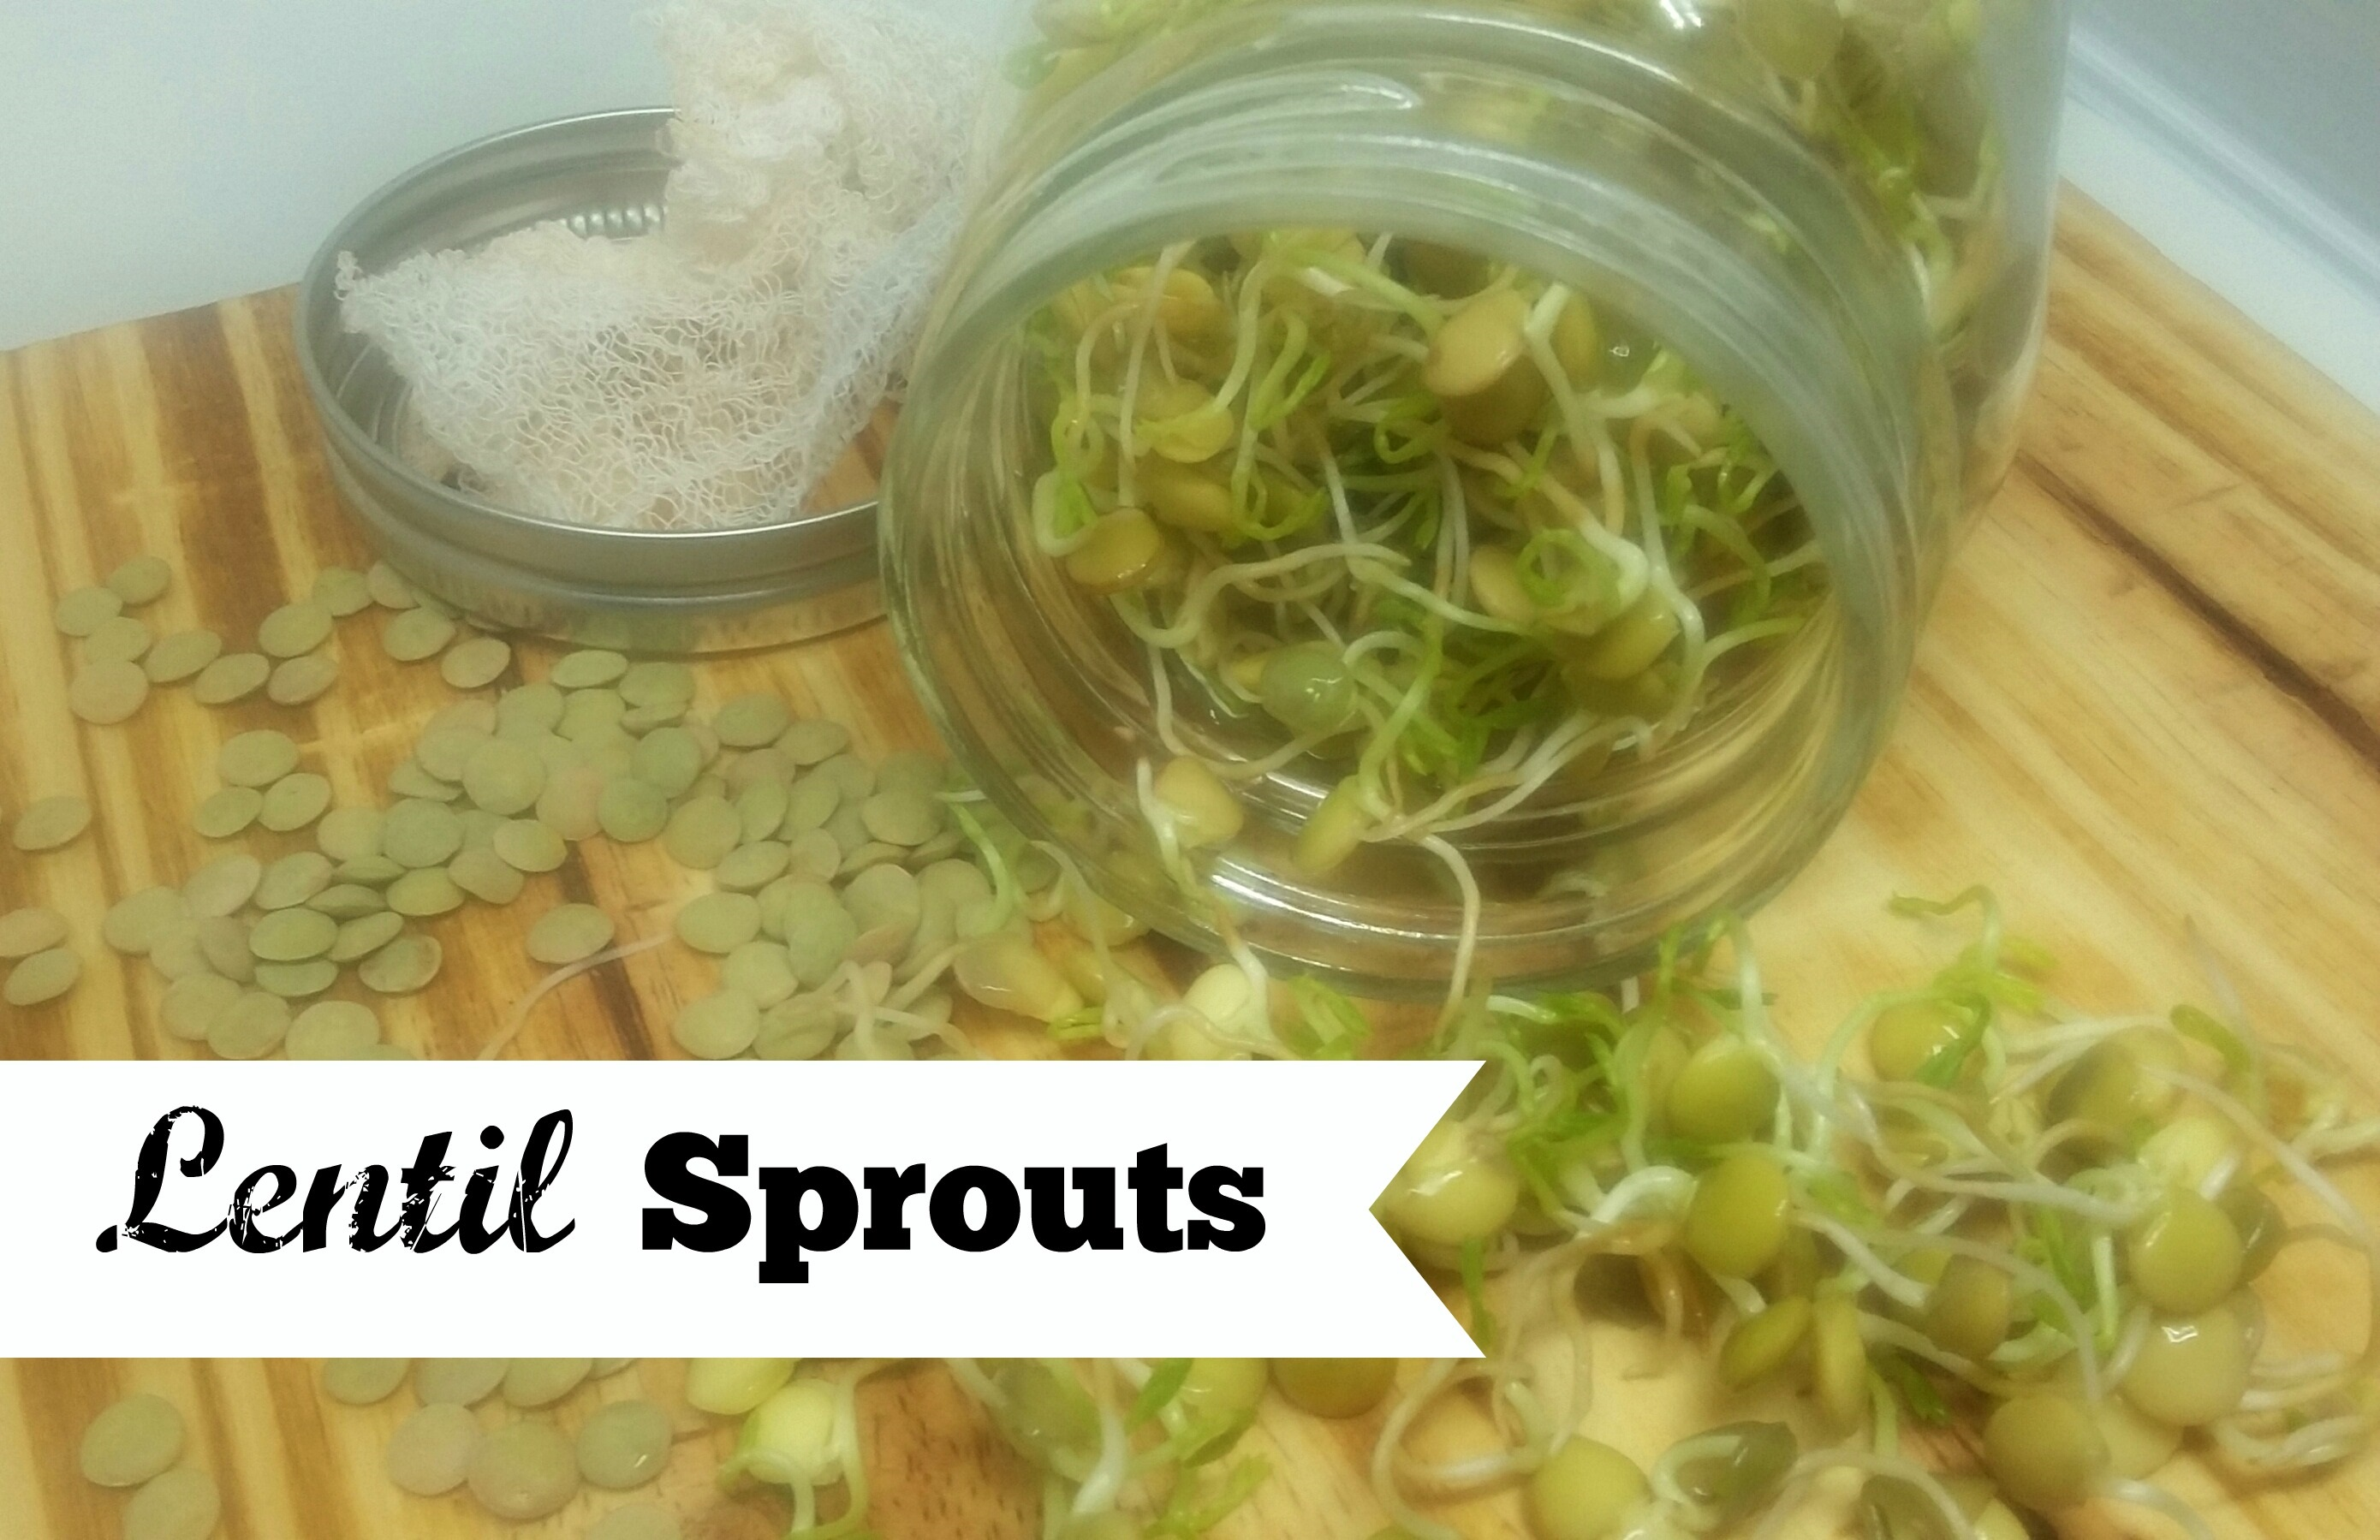 Grow your own sprouts in 30 seconds a day! (Or less.)